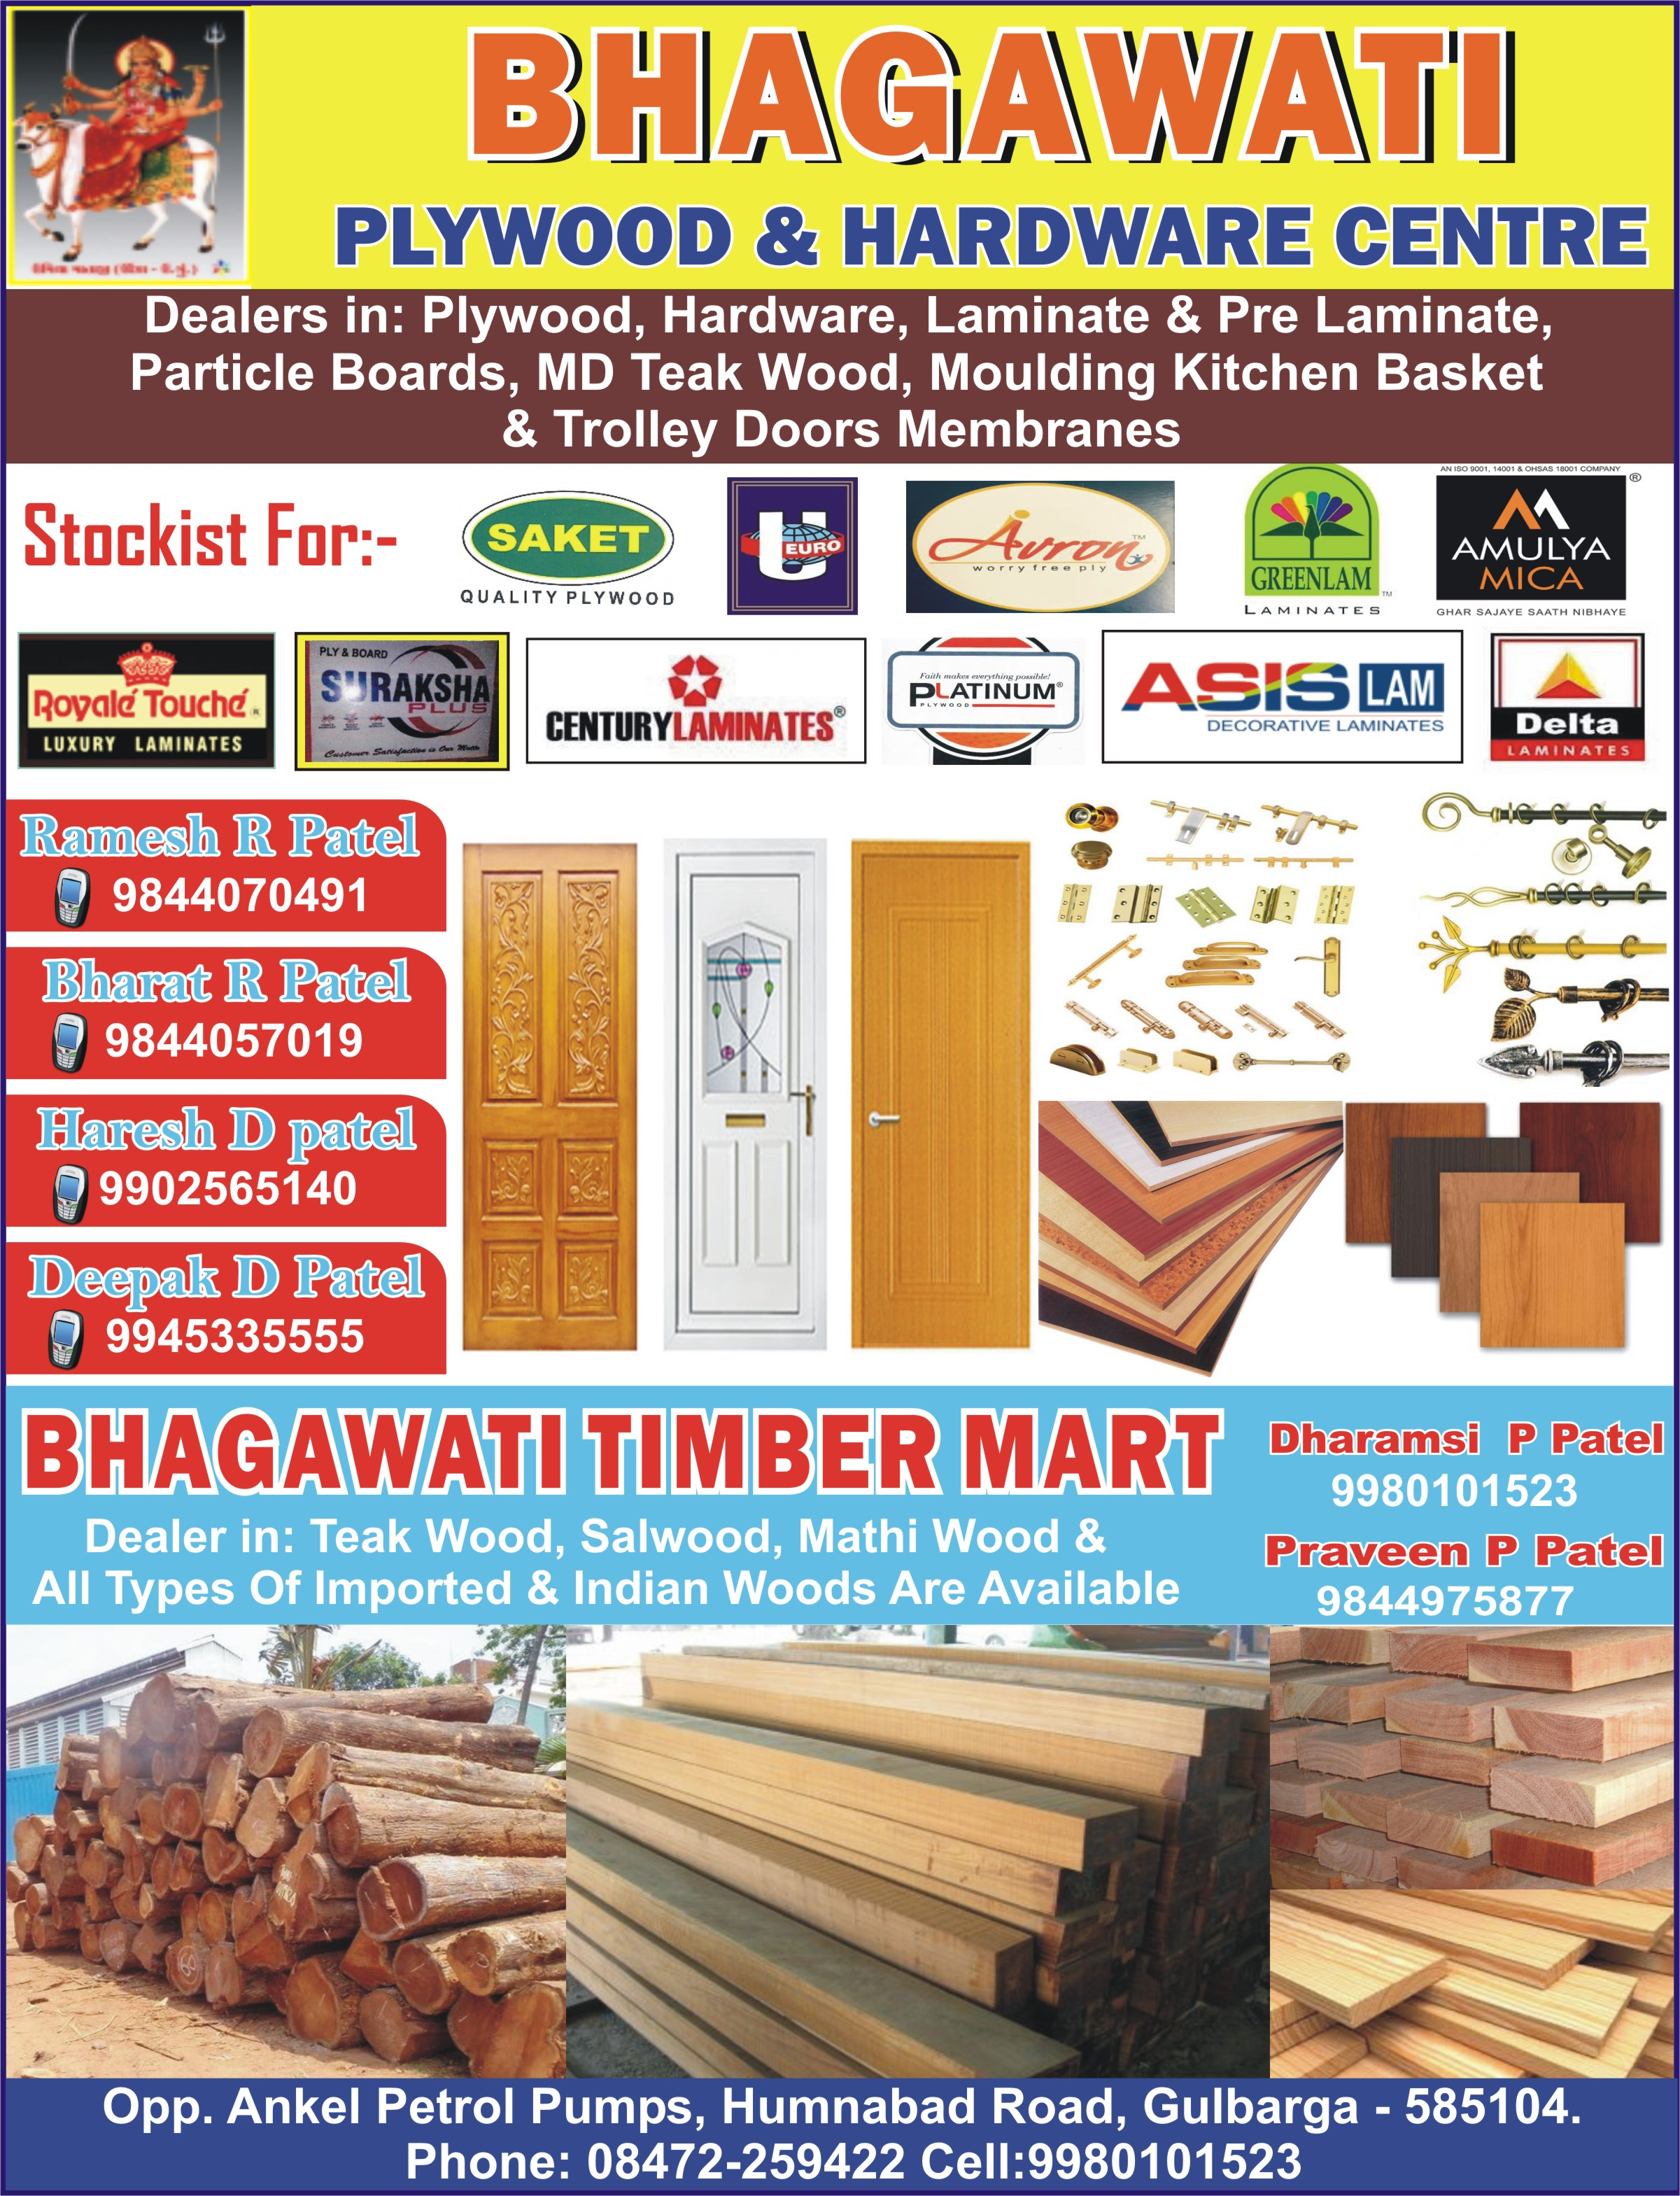 BHAGAWATI TIMBER MART